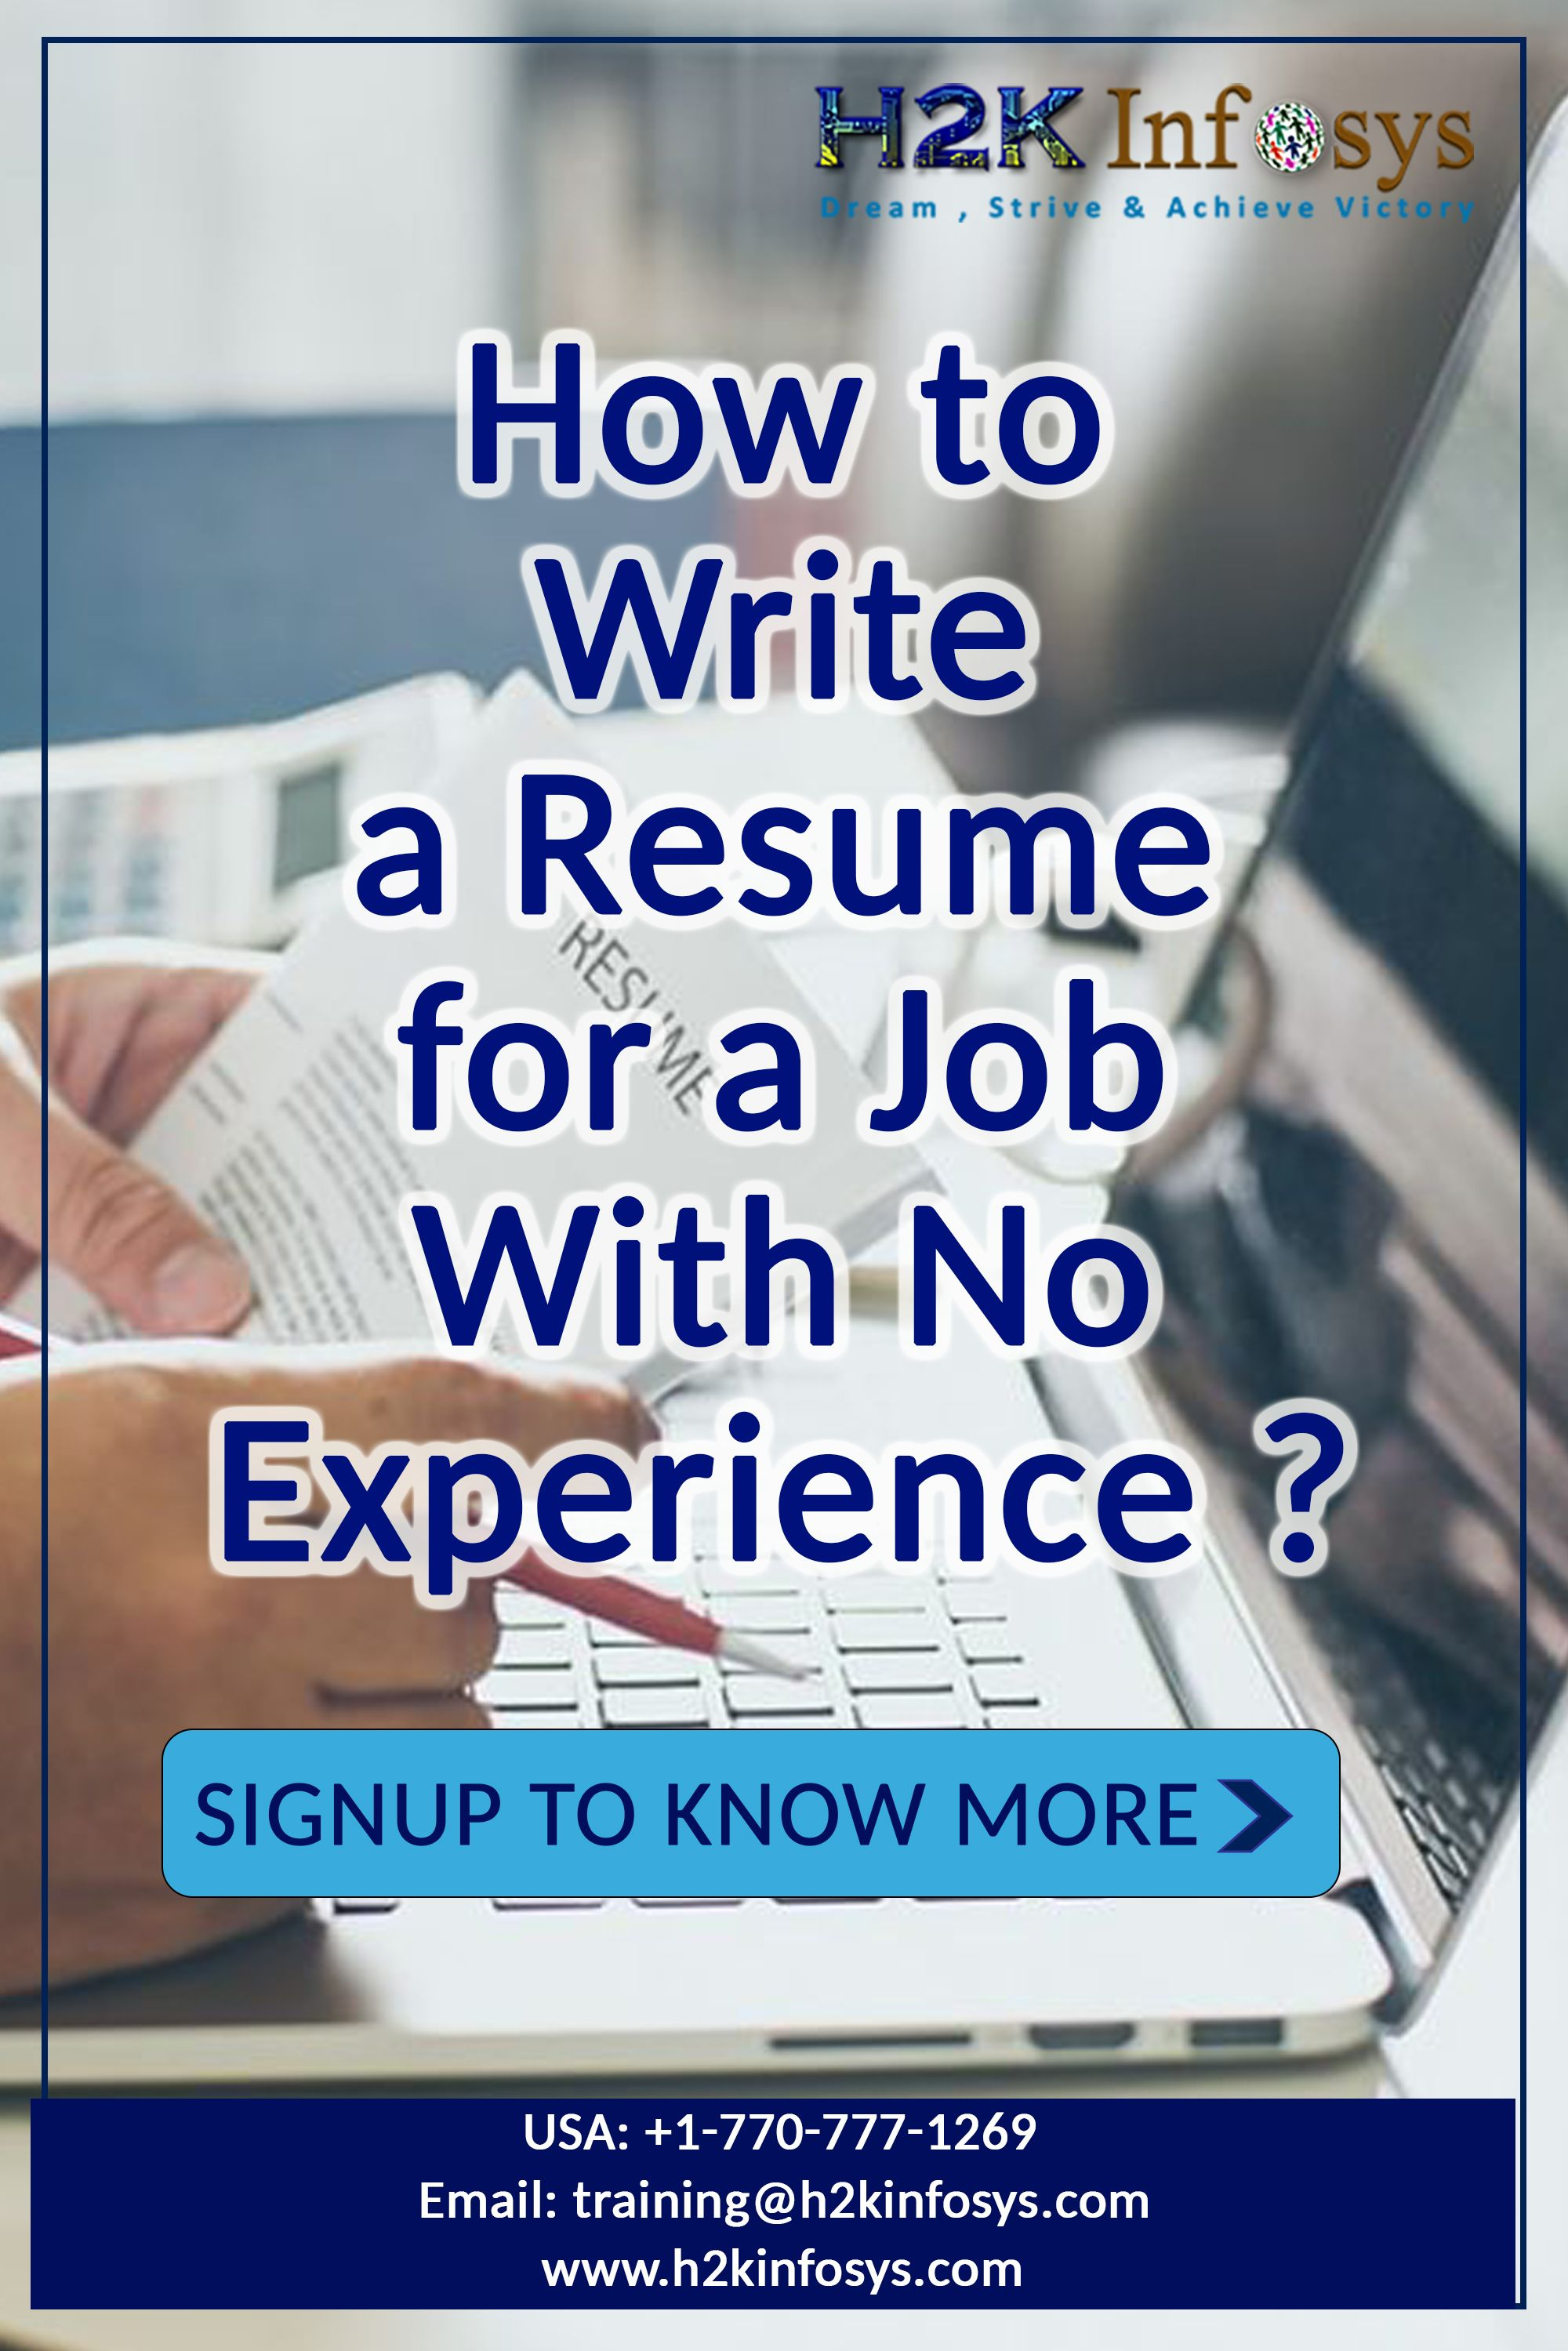 How to write a resume for a job with no experience in